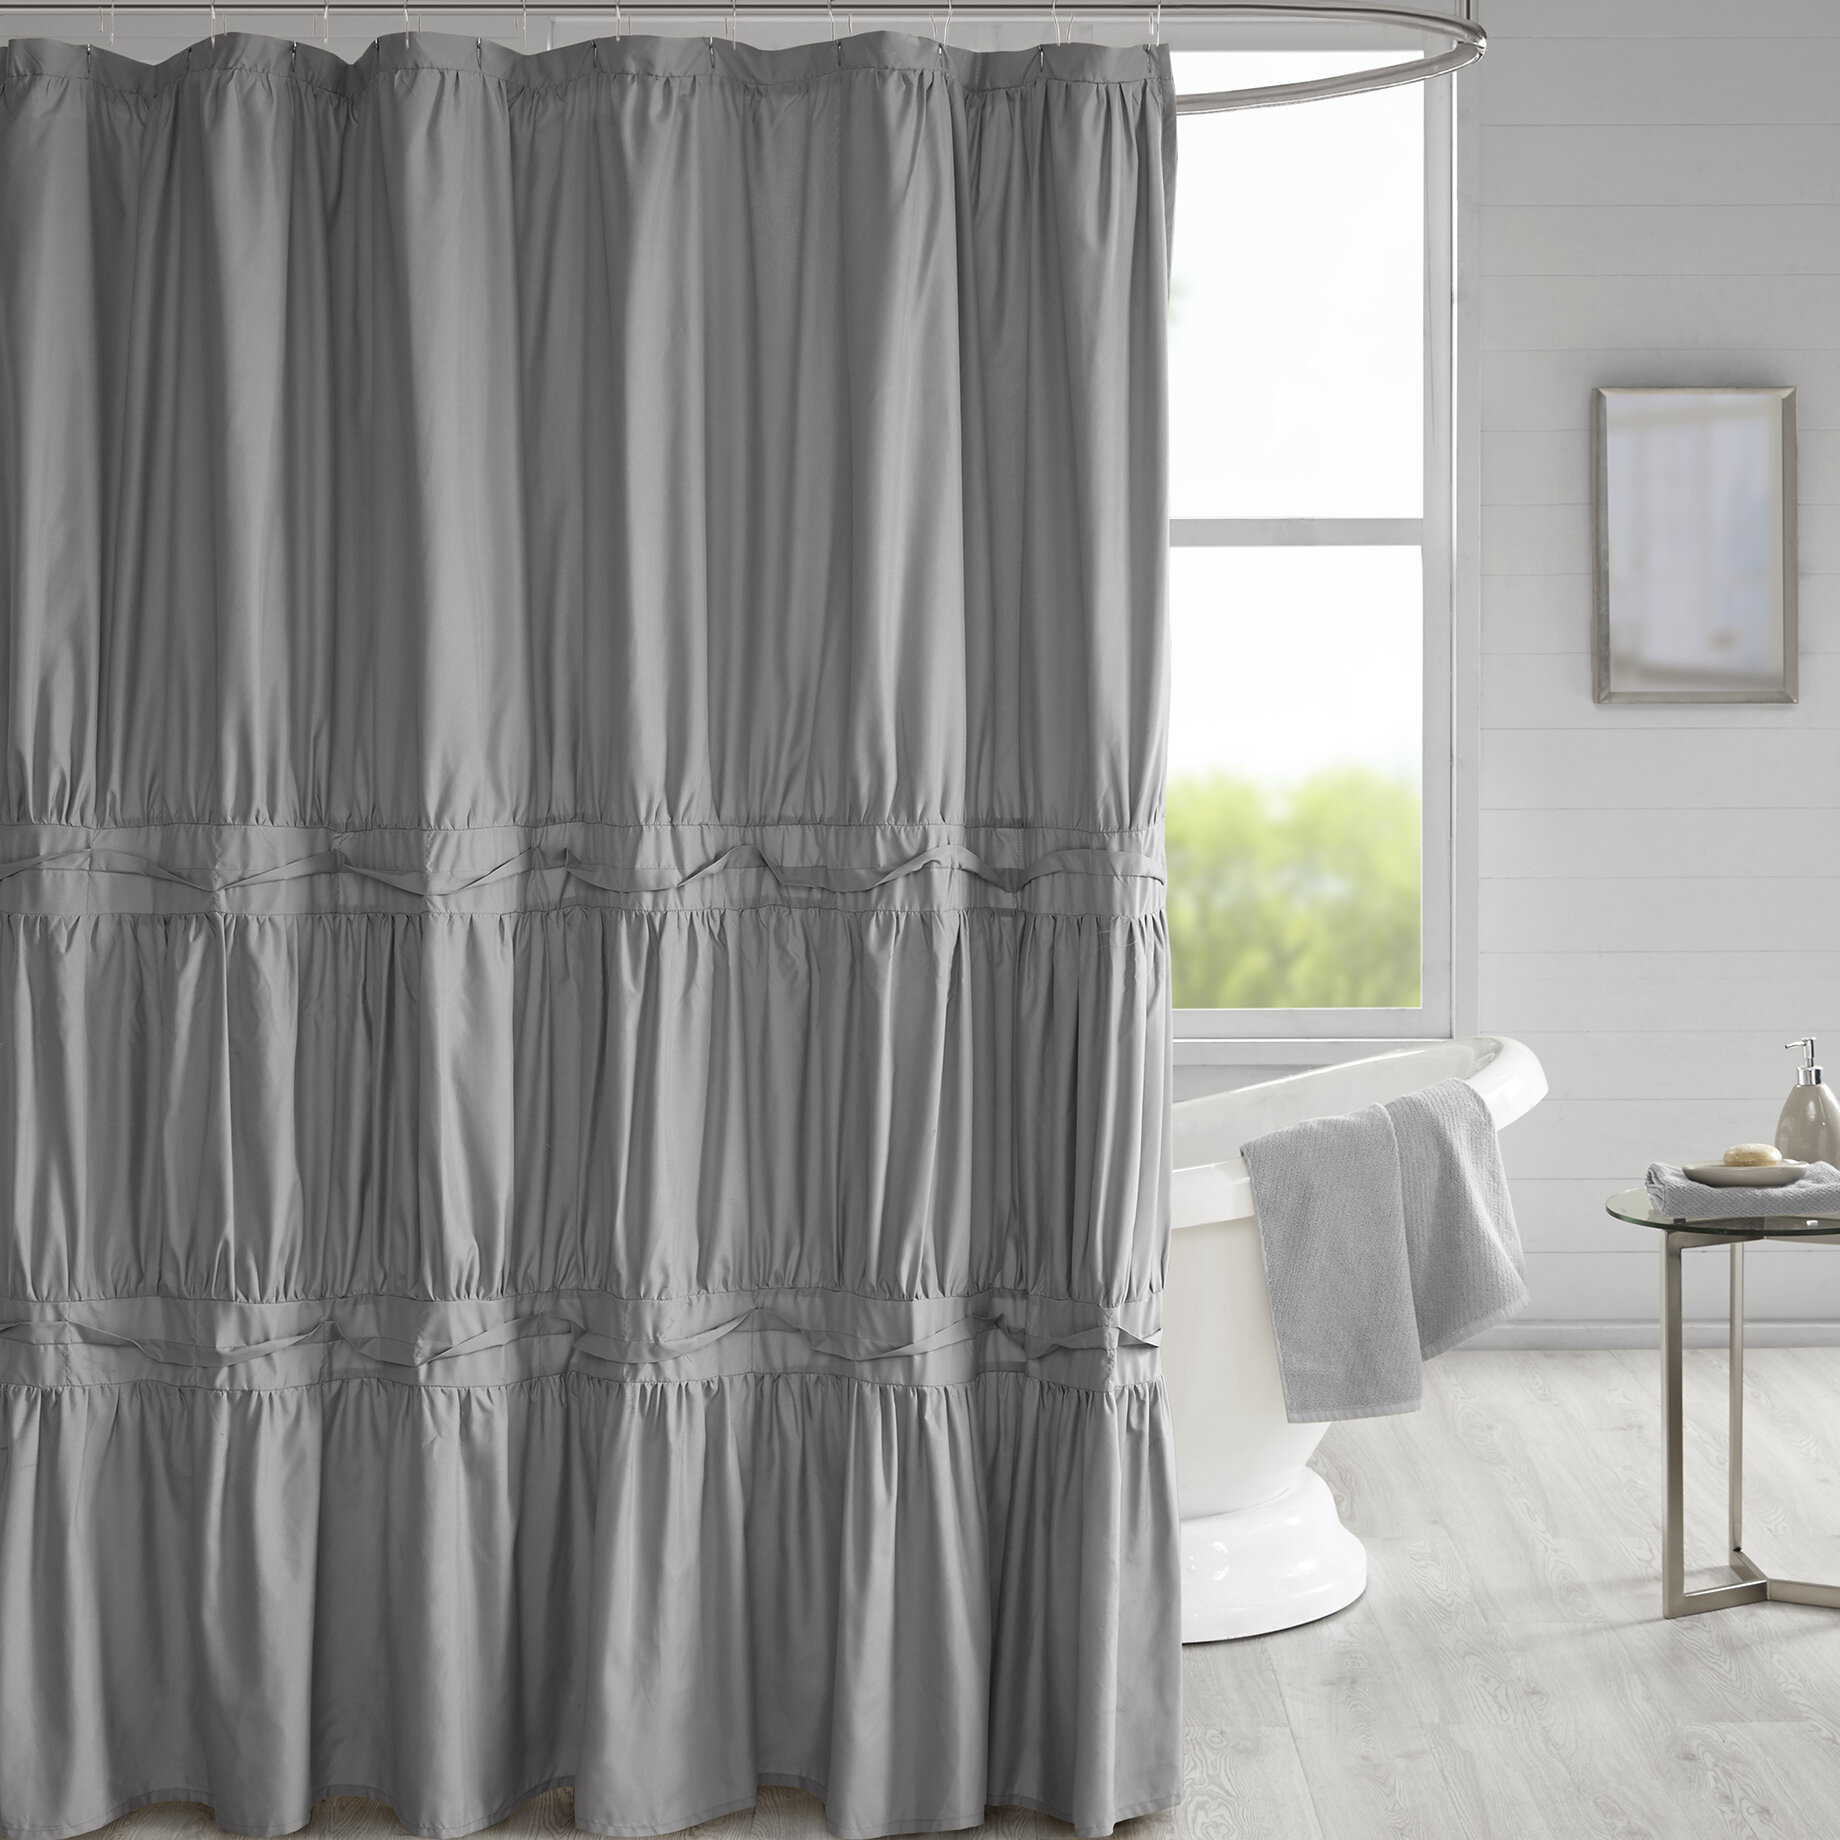 Tyntesfield Solid Shower Curtain Reviews